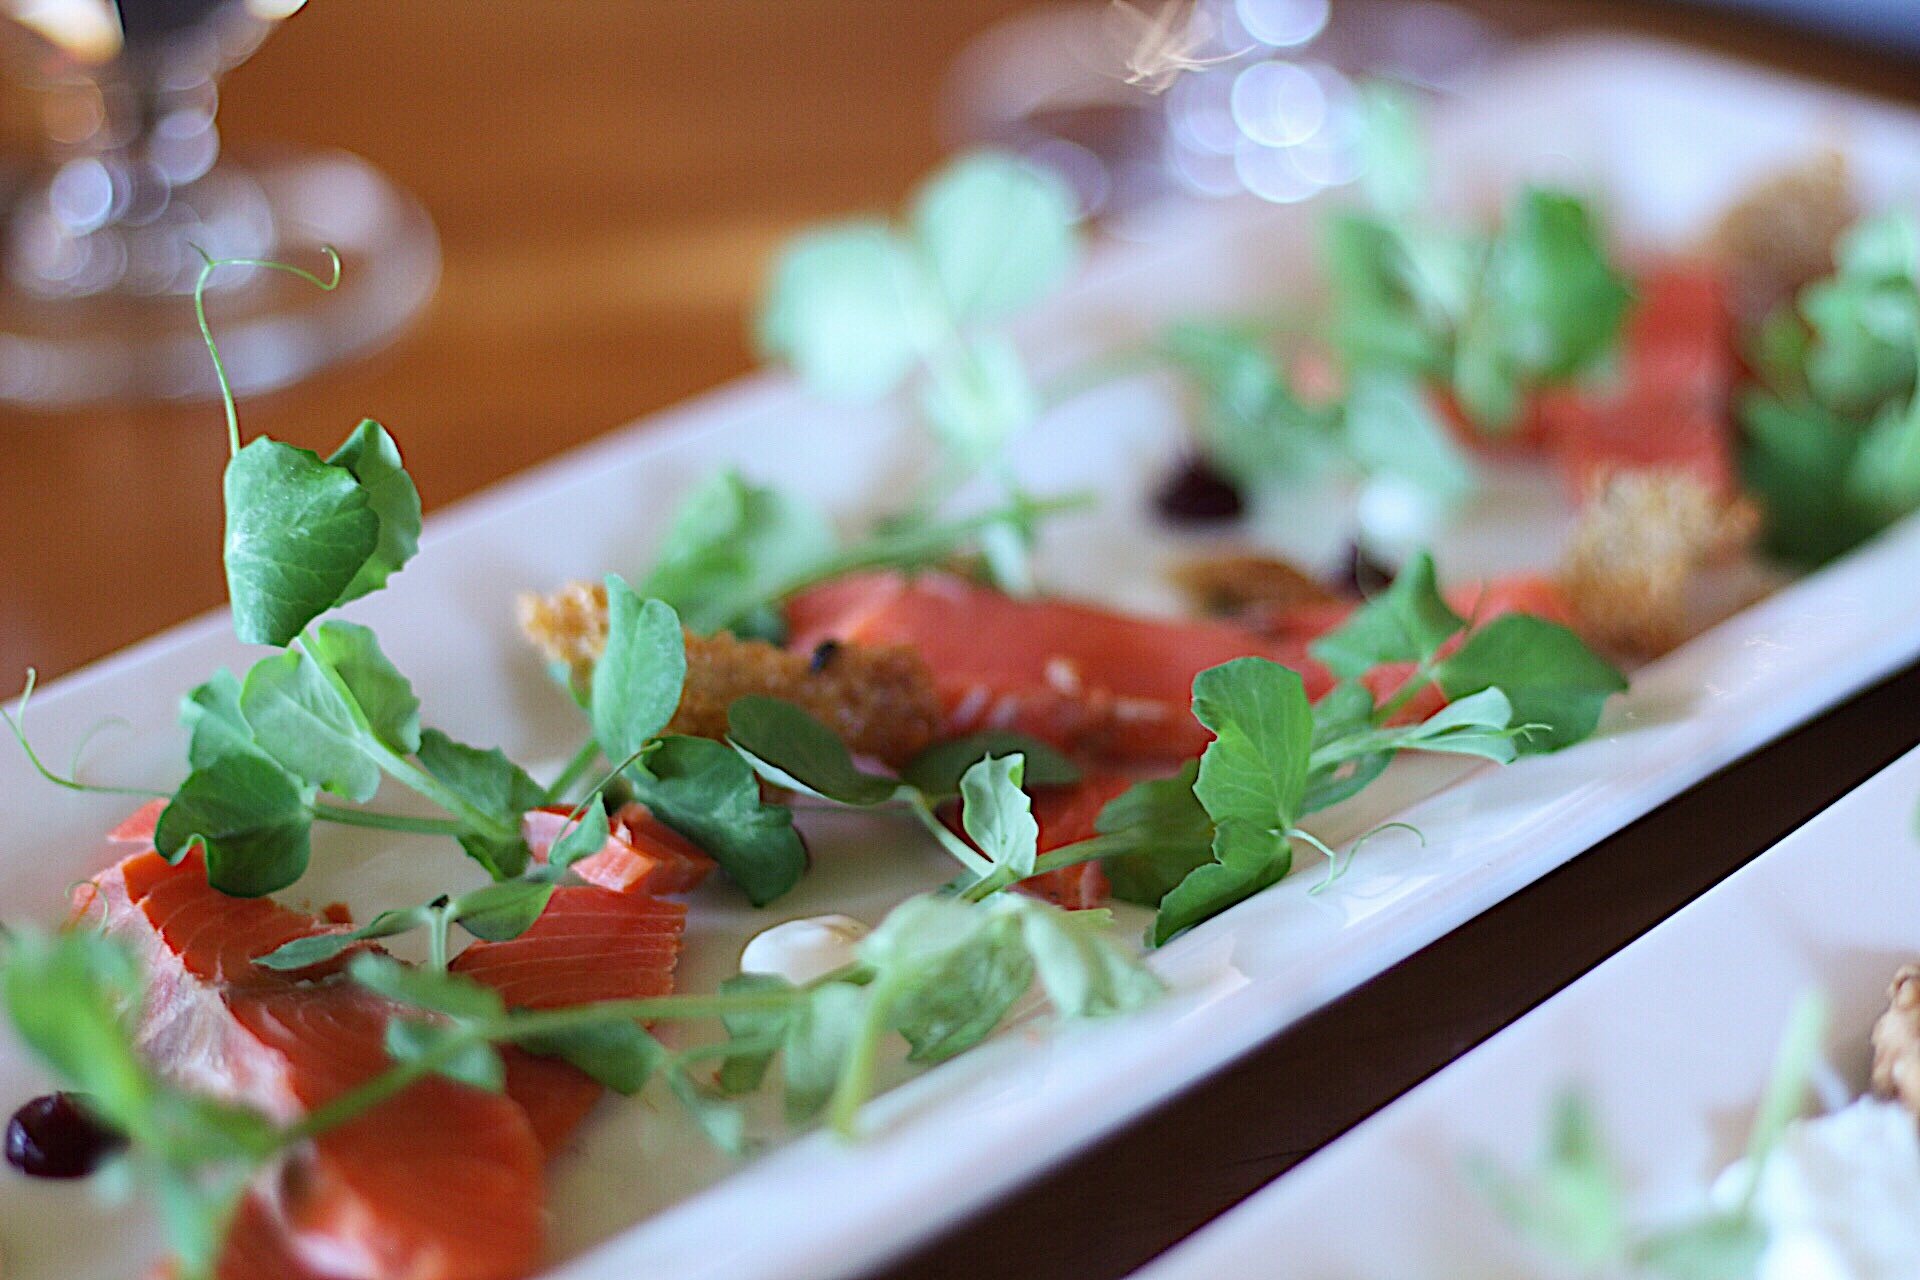 Smoked Salmon And Pea Shoots at the Sooke Harbour House